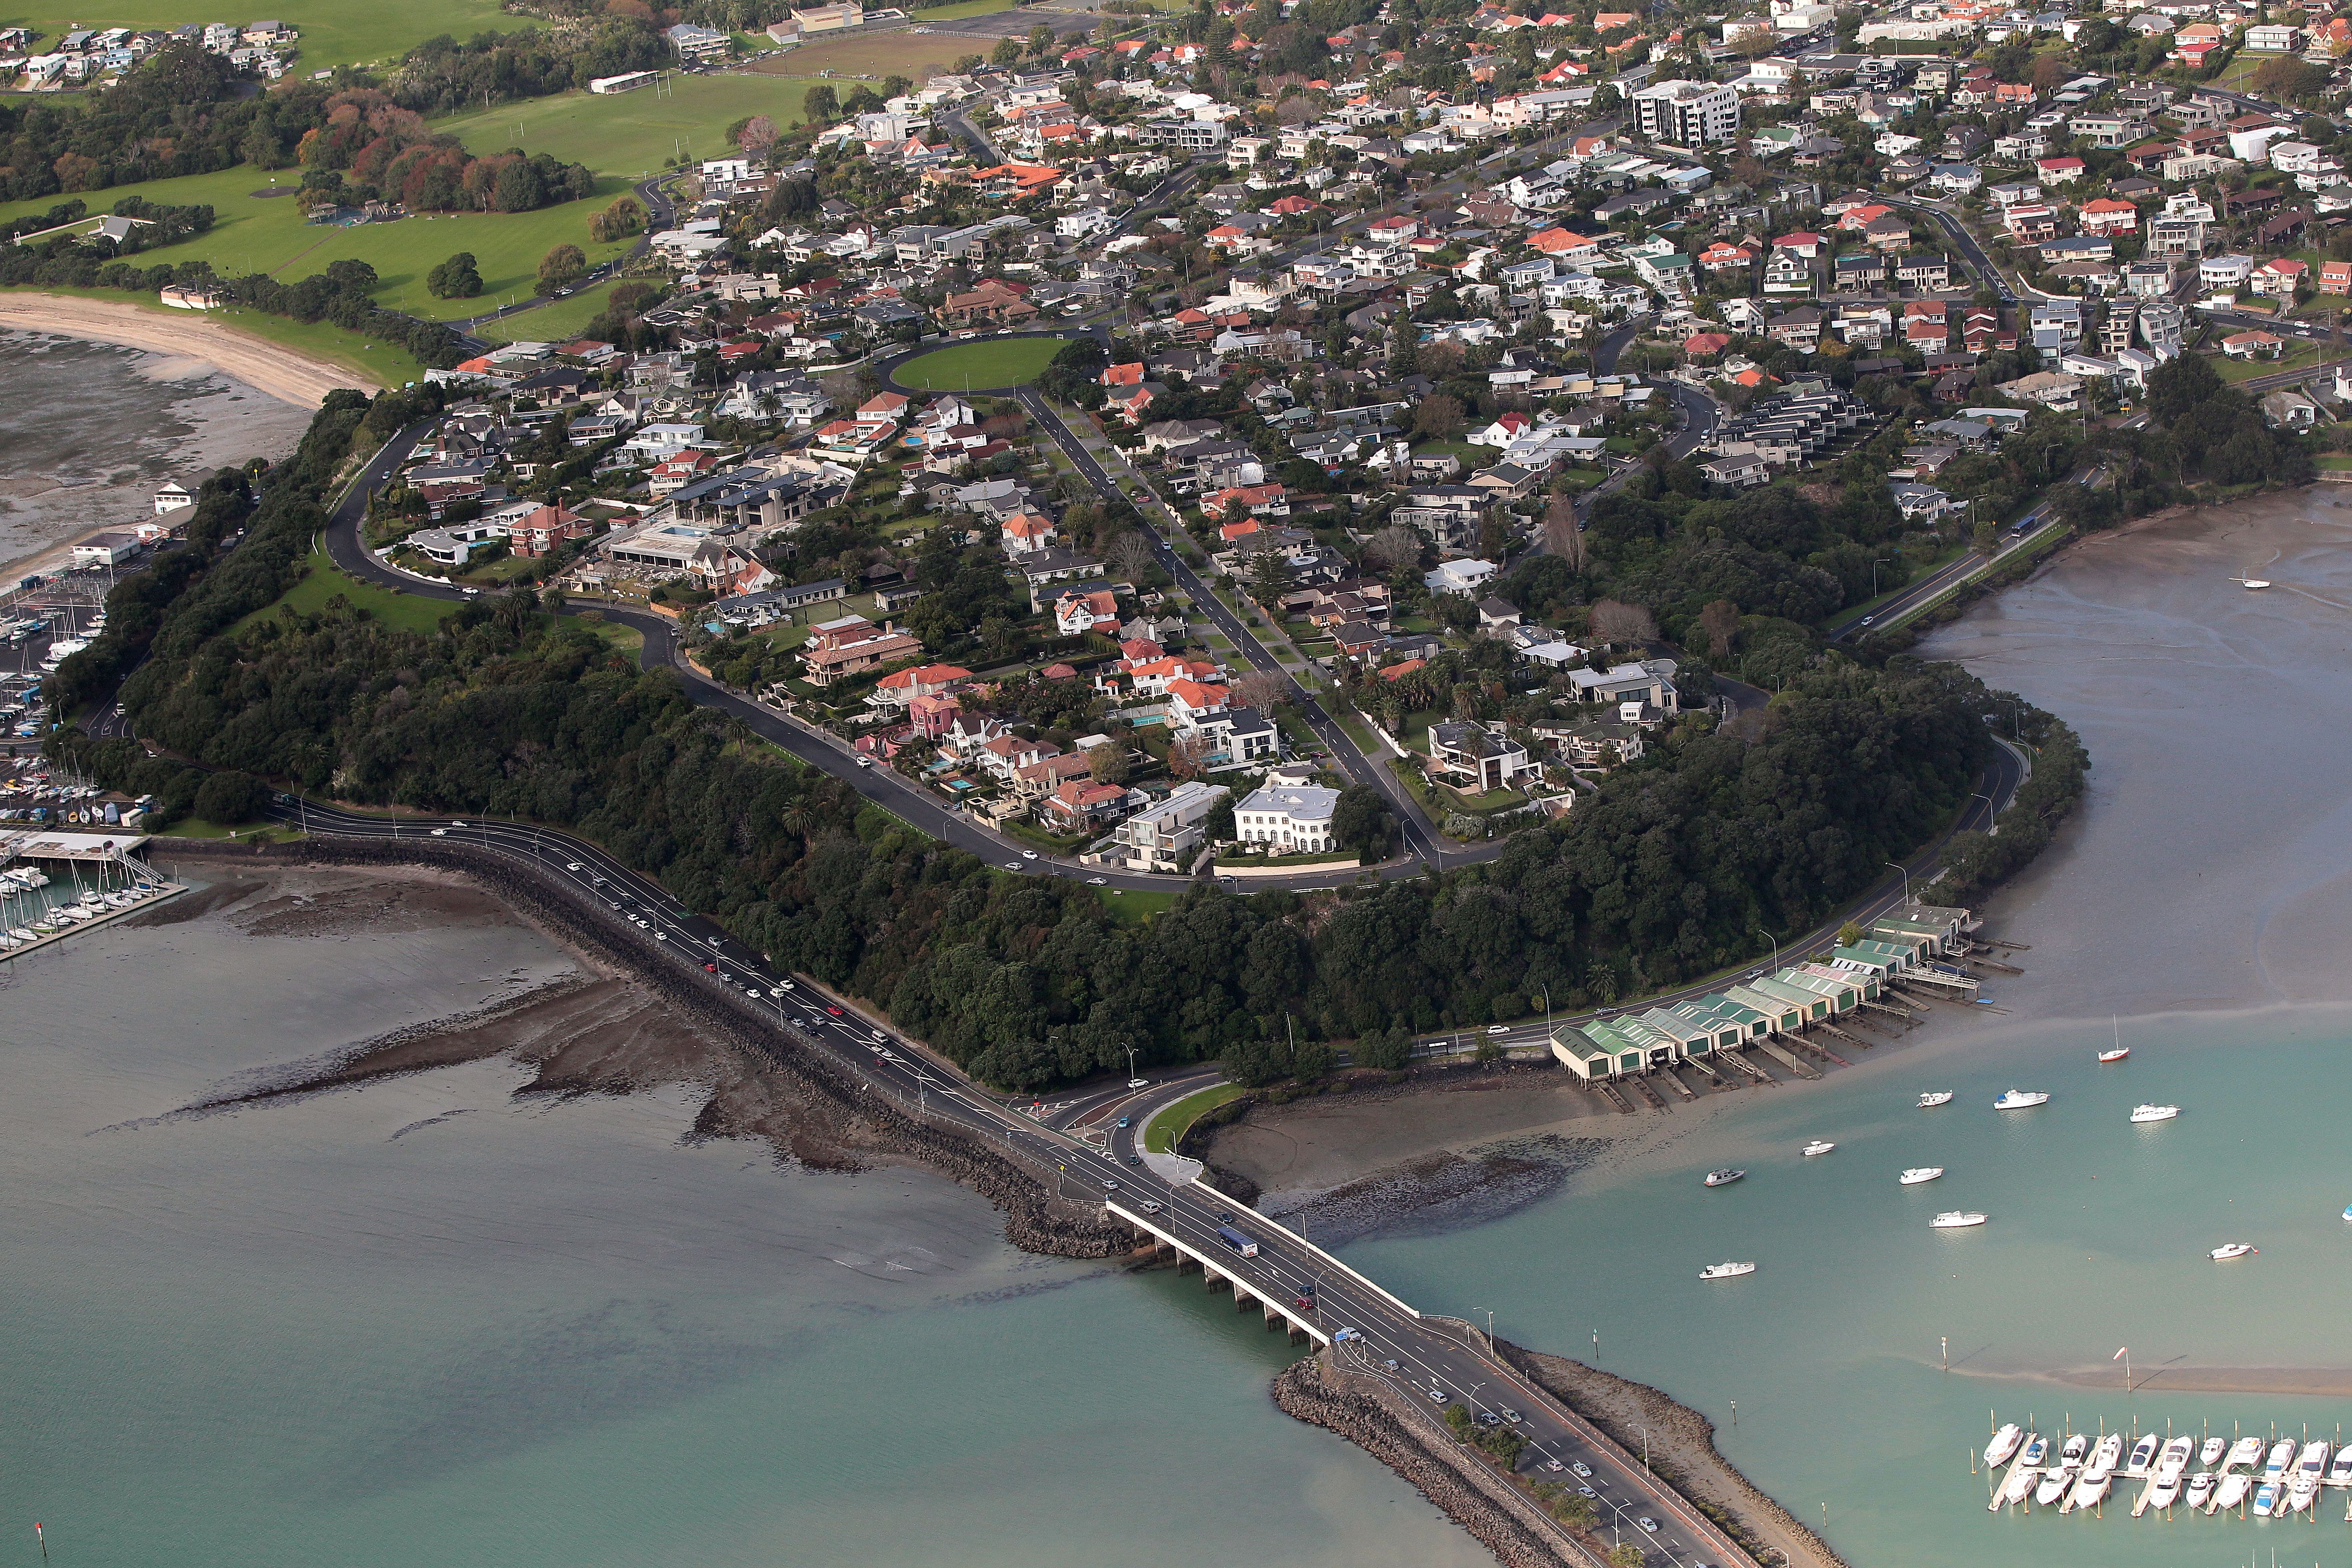 Paritai Lost The Big Mansion Sell Off Nz Herald